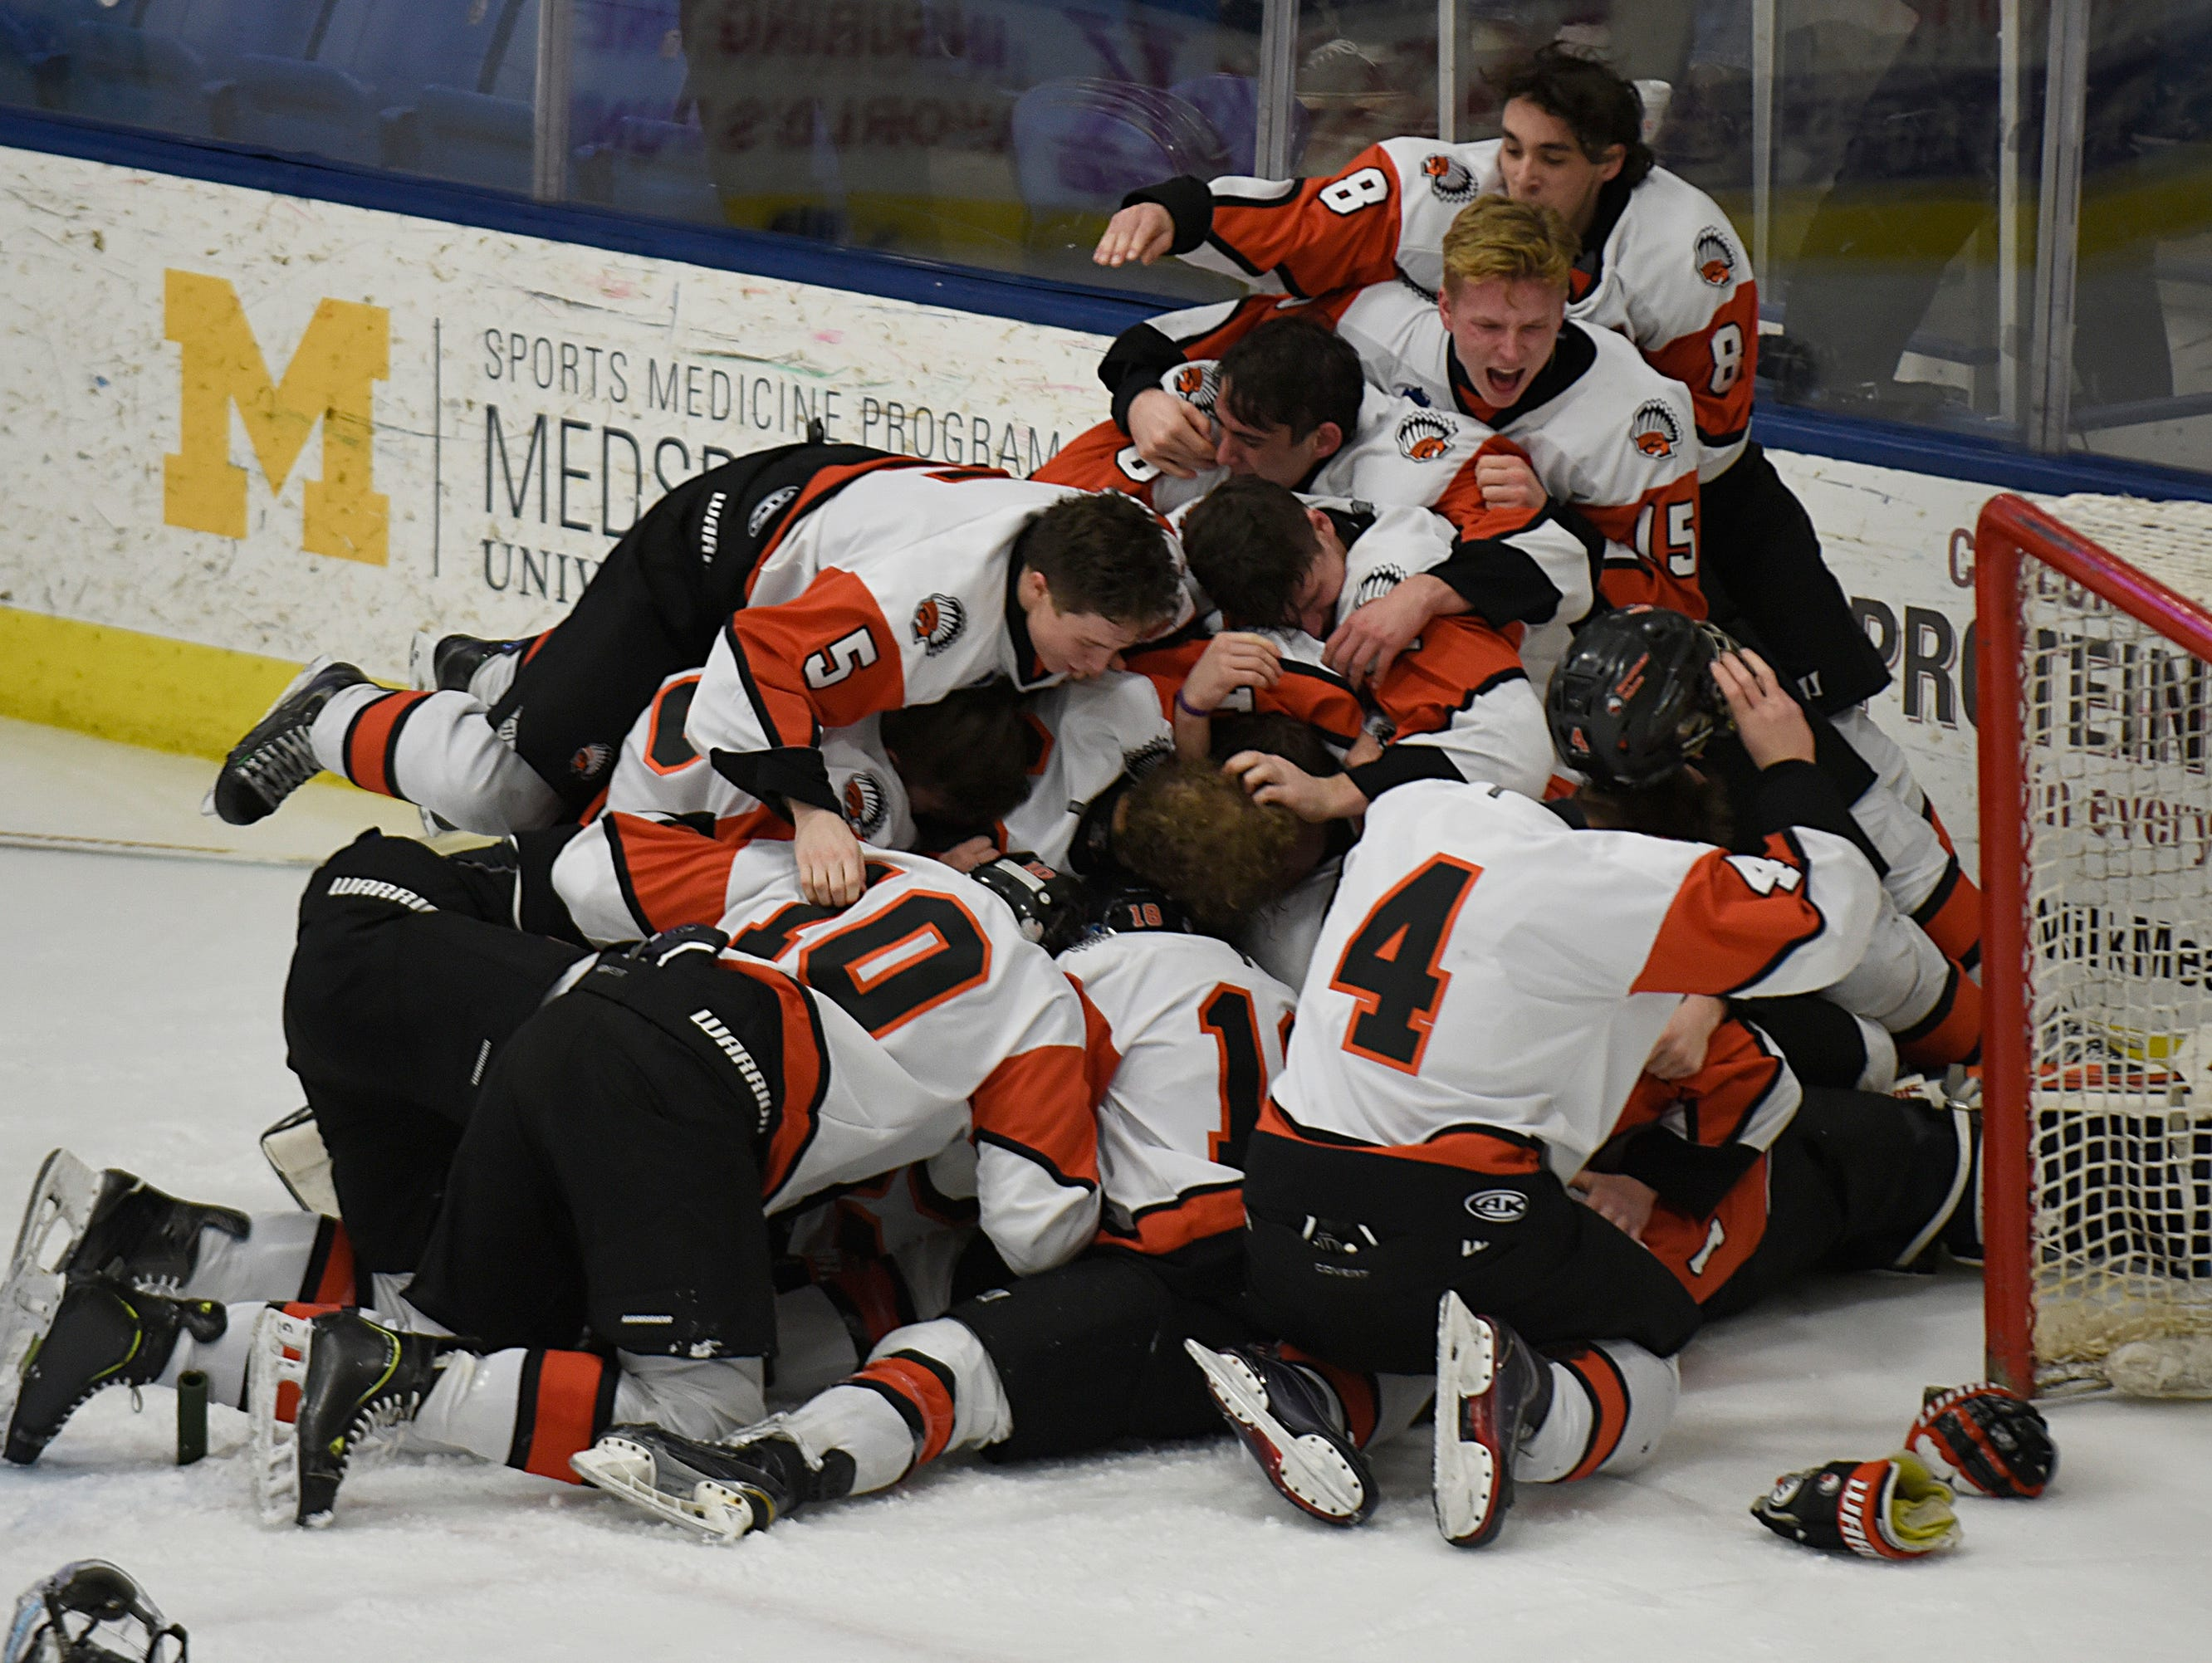 Brother Rice players celebrate after capturing the fifth state championship in program history on Saturday.